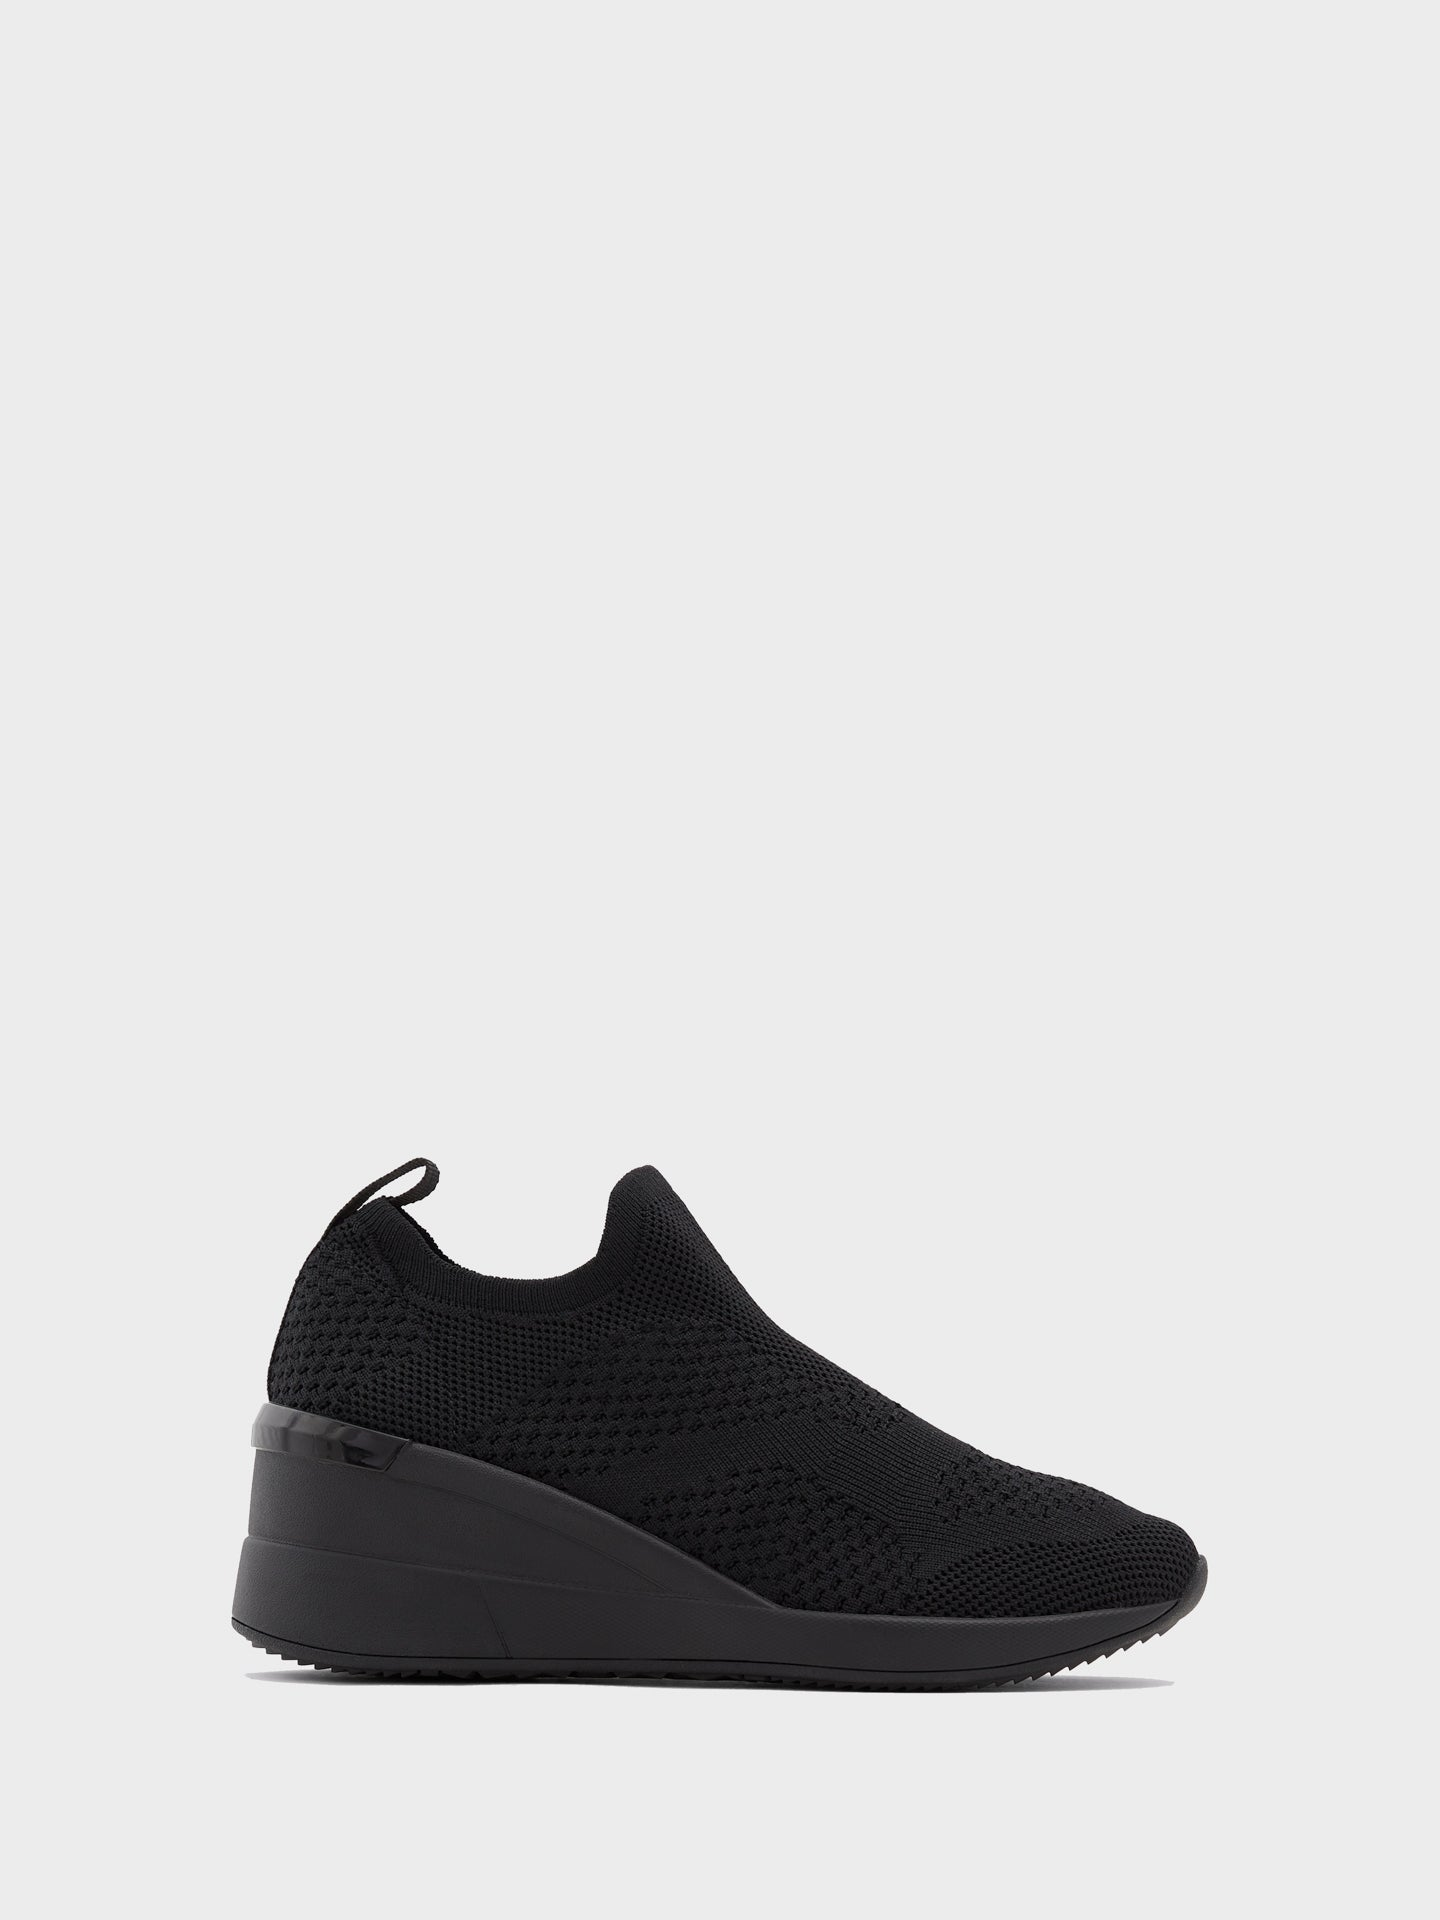 Aldo Black Round Toe Trainers